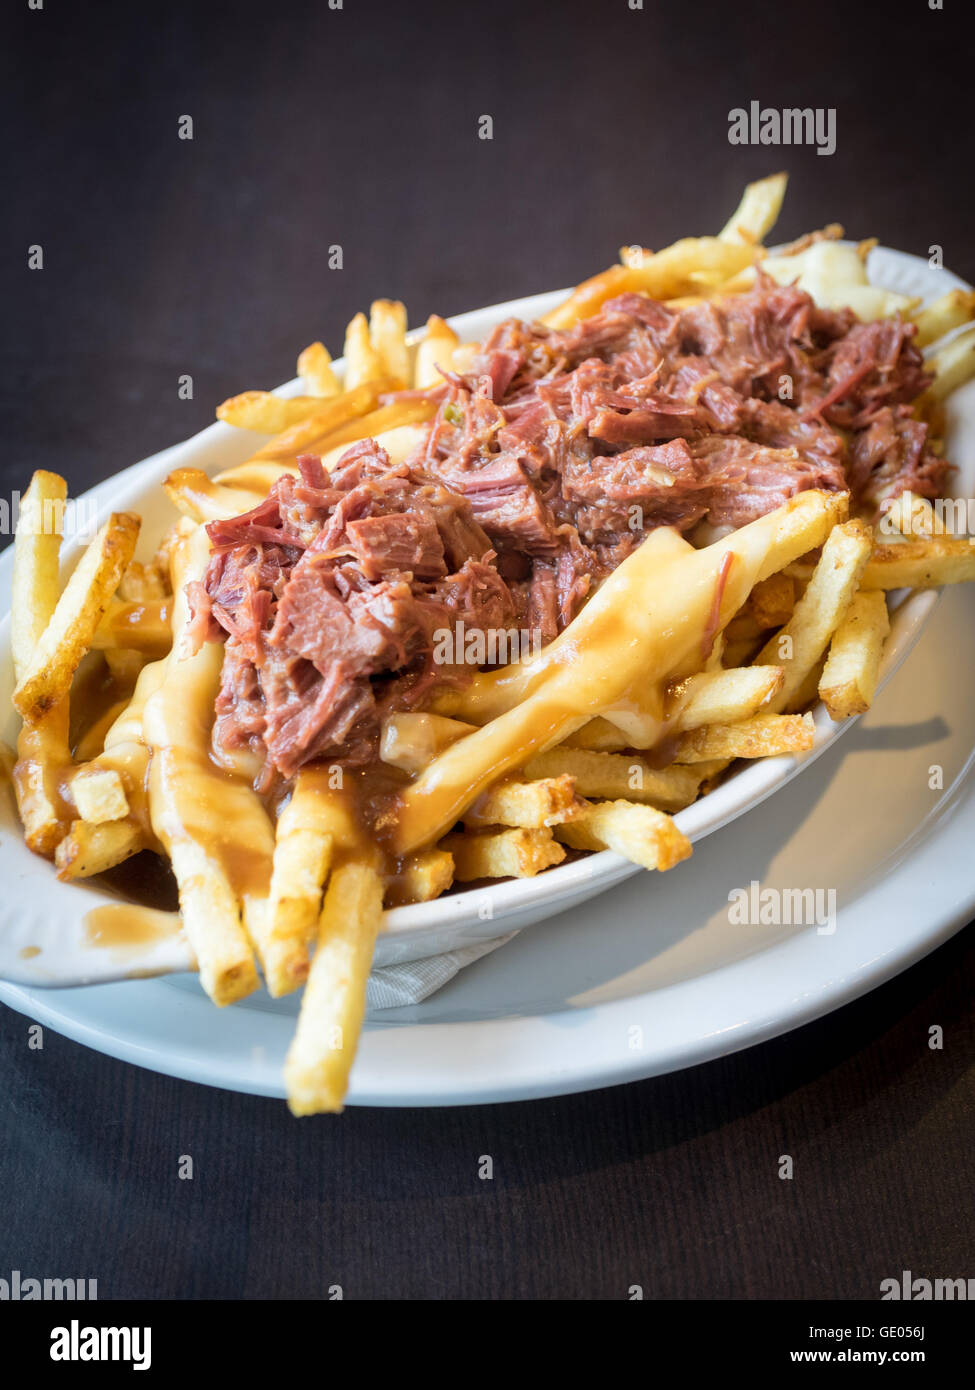 A hearty dish of beef brisket poutine from Urban Diner in Edmonton, Alberta, Canada. - Stock Image